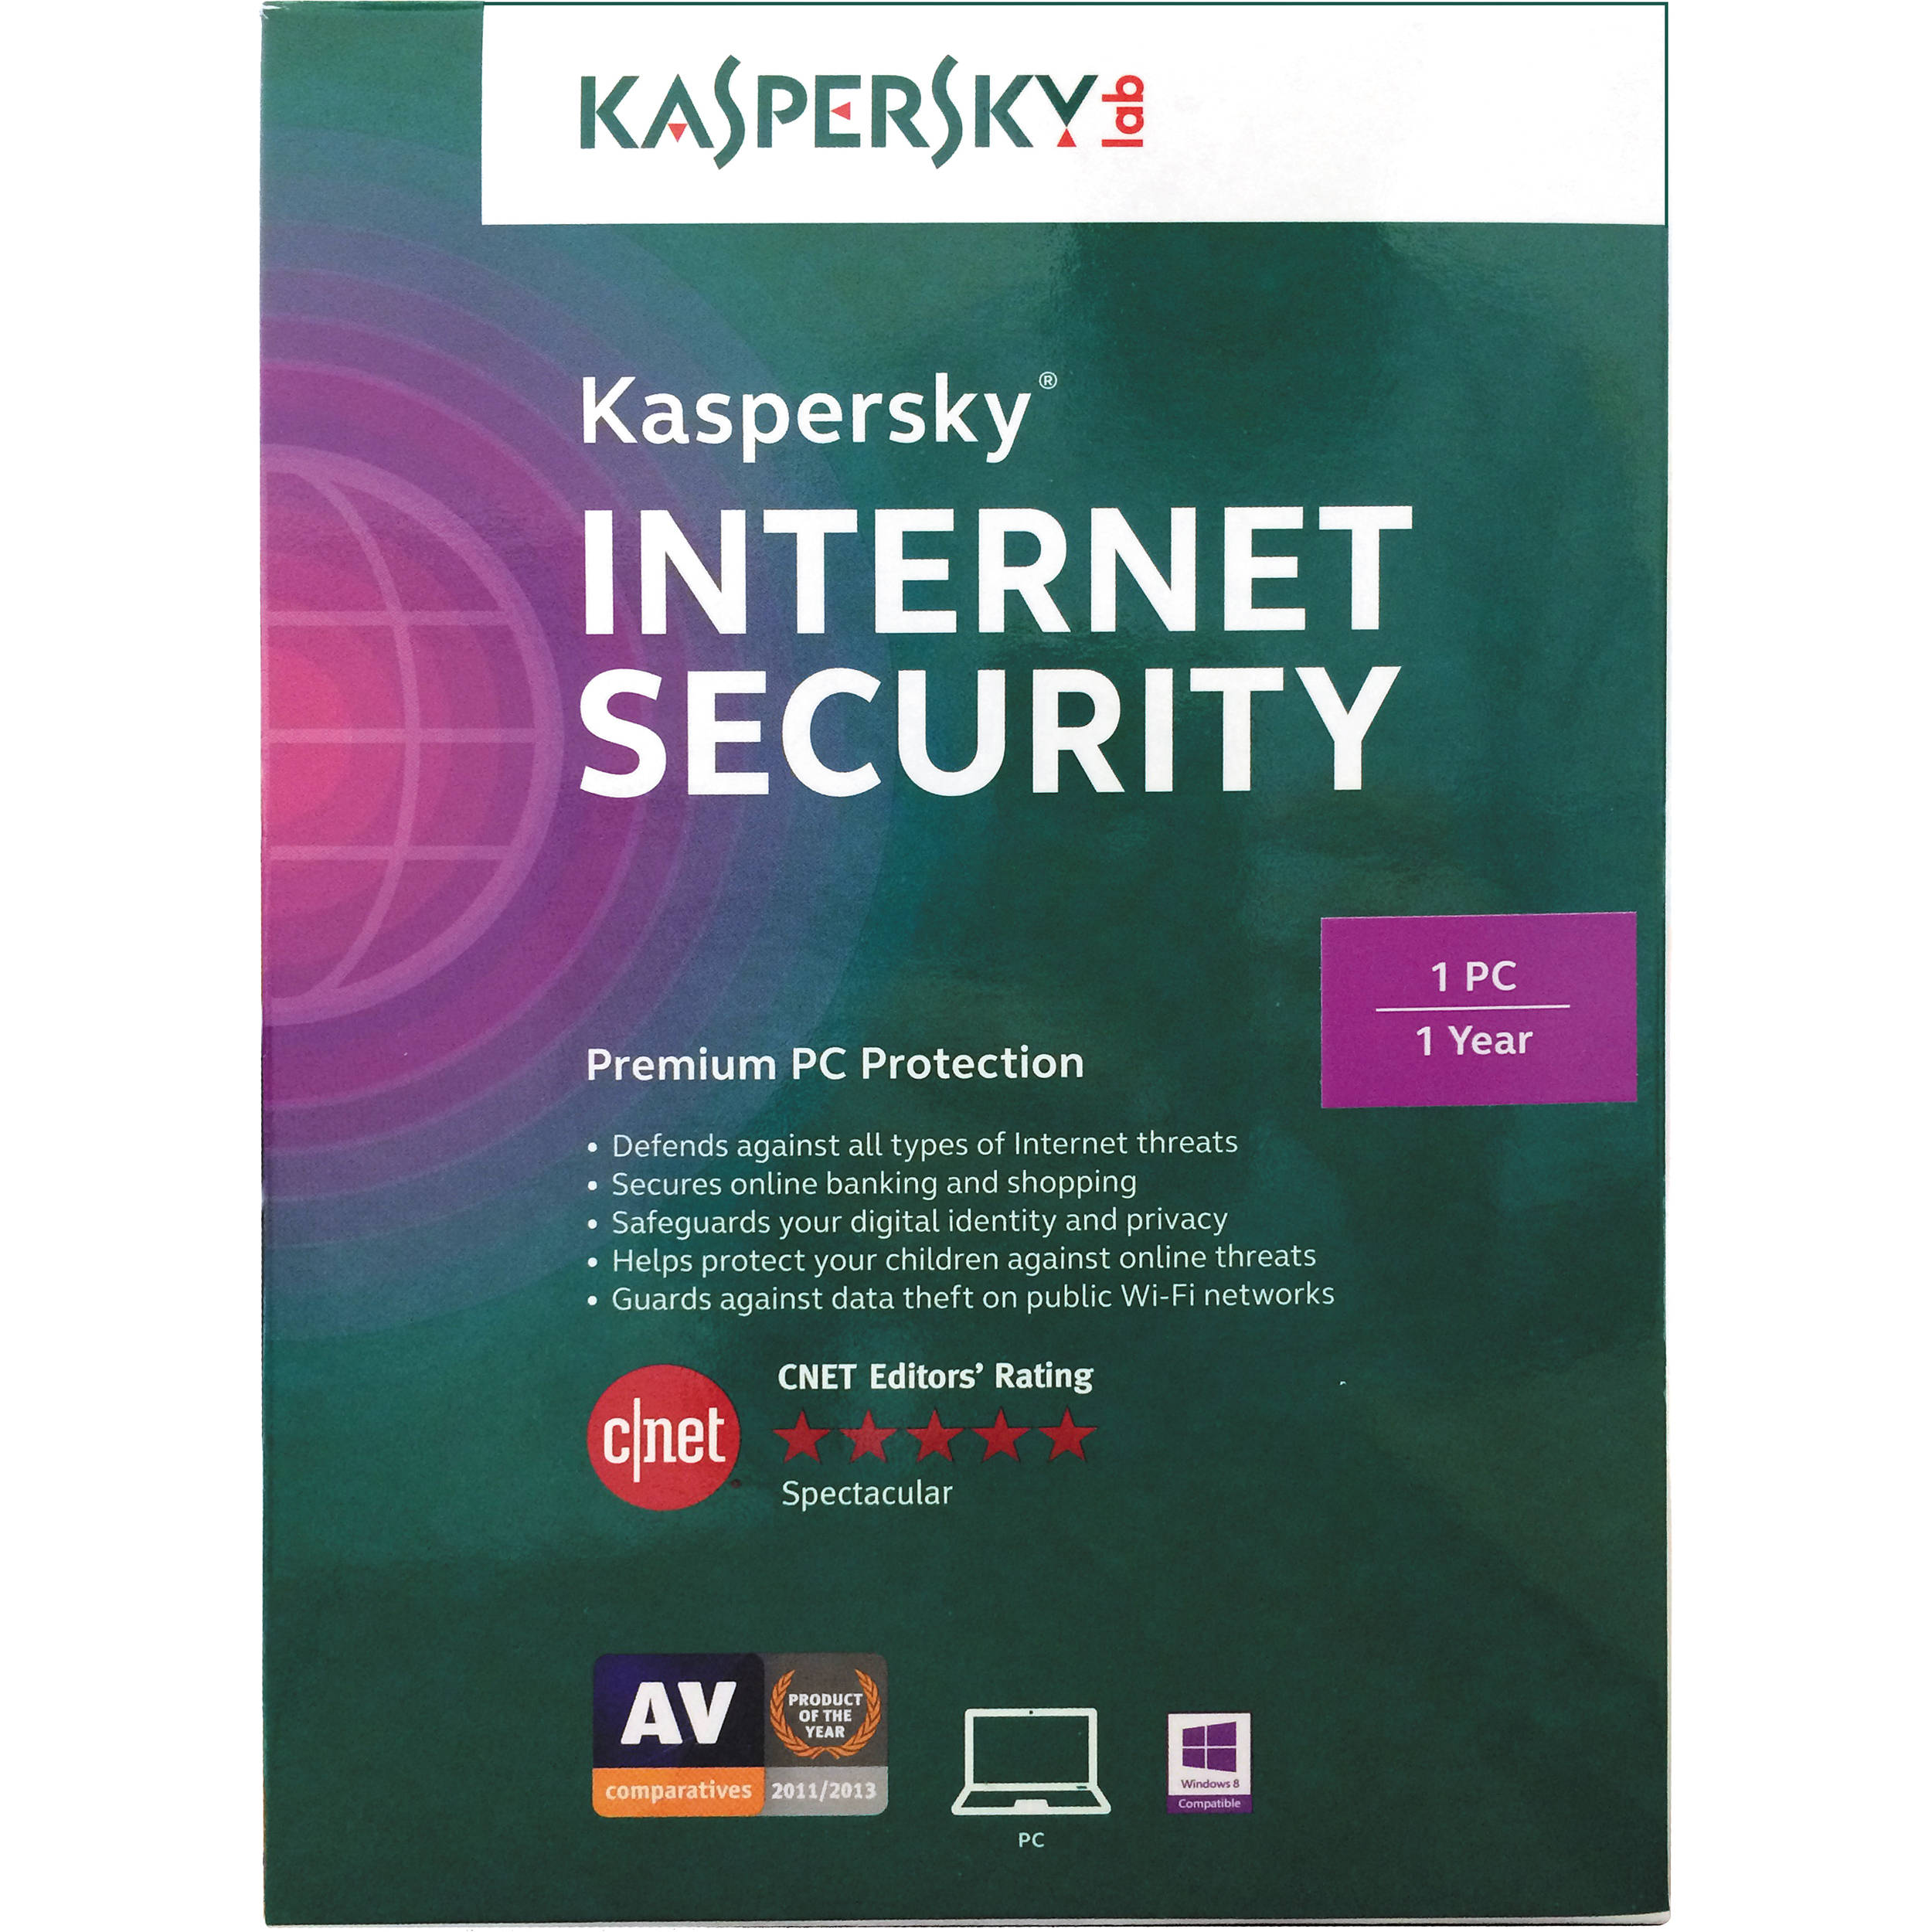 Kaspersky Internet Security cho 1PC/1Year